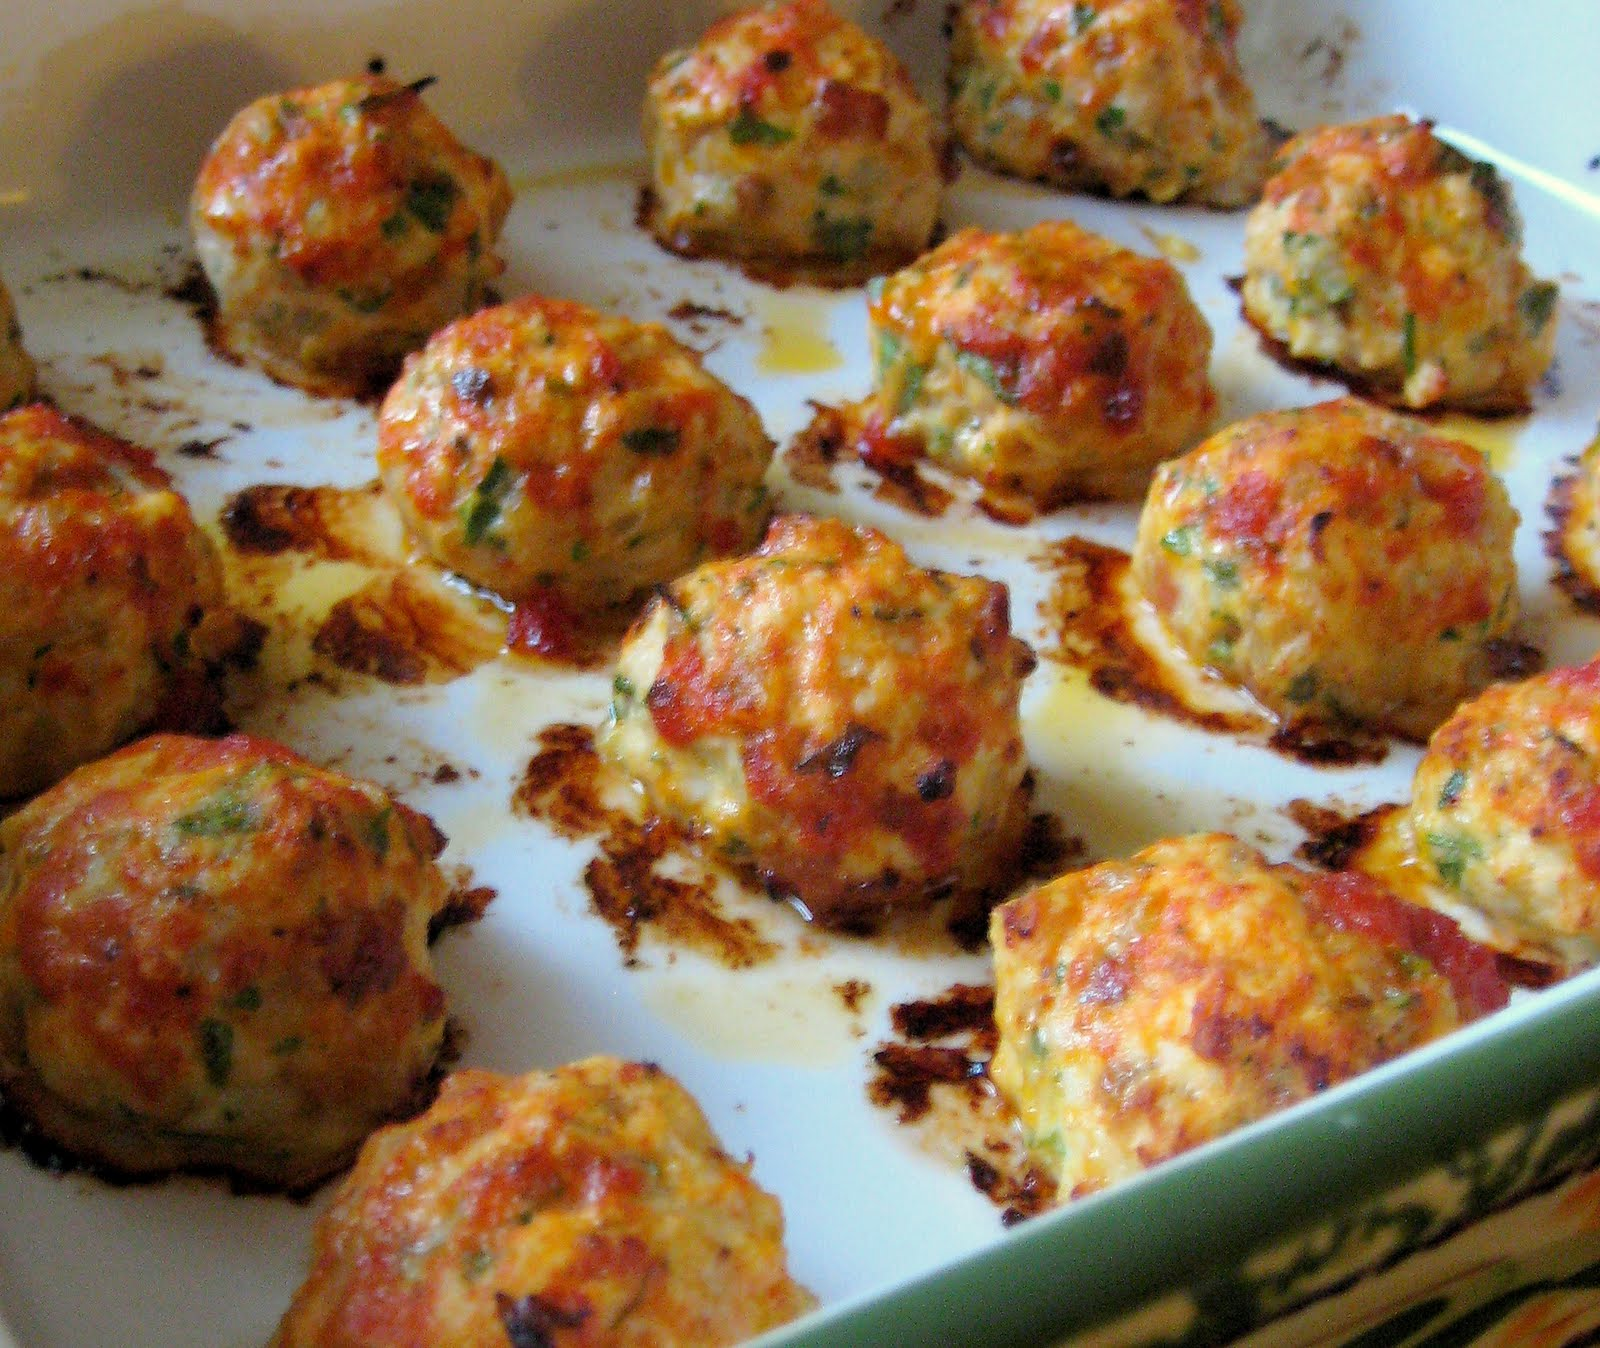 Dandy Dishes Baked Chicken Meatballs